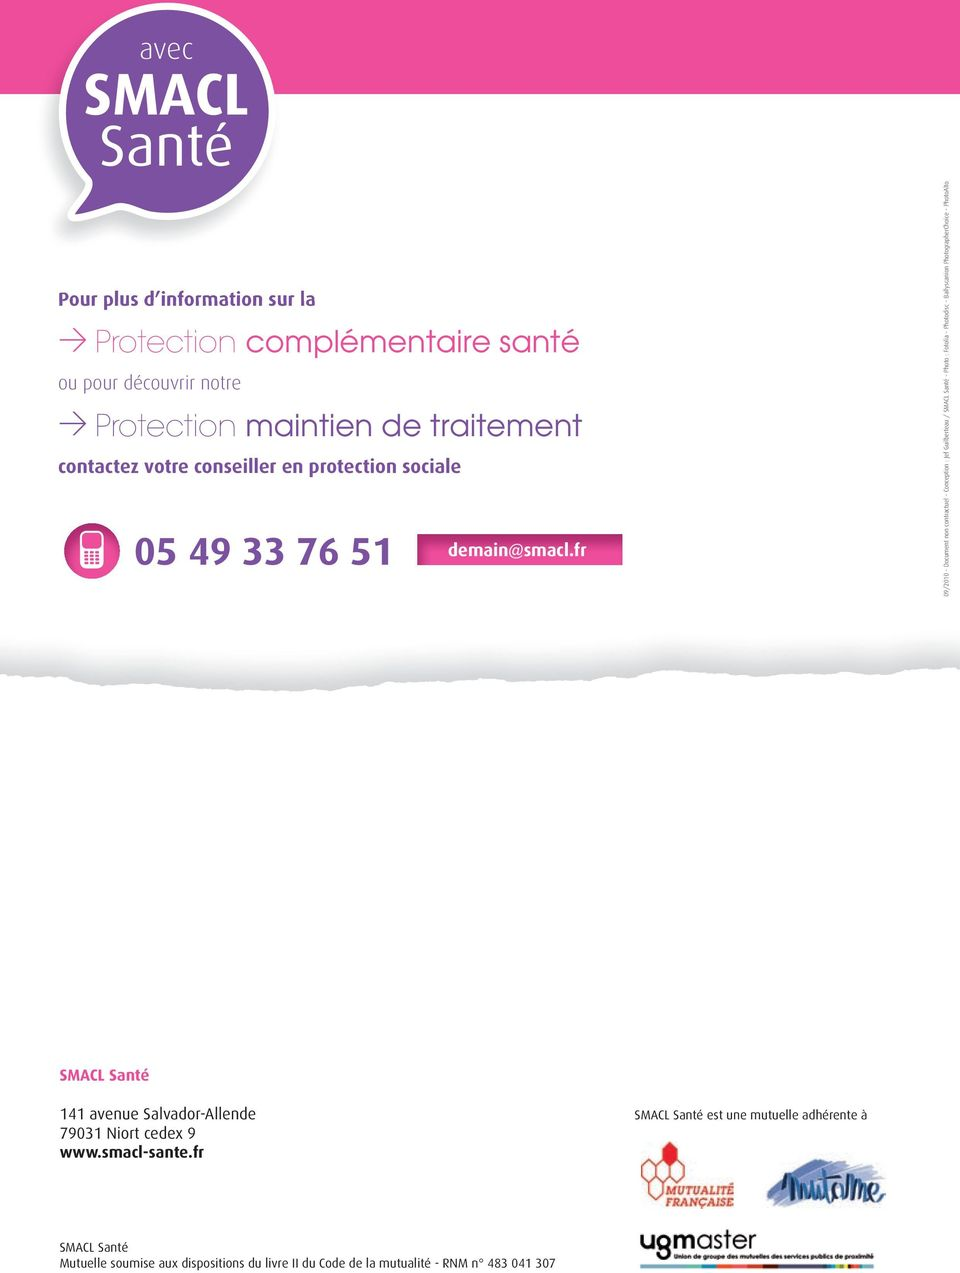 fr 09/2010 - Document non contractuel - Conception : Jef Guilberteau / SMACL Santé - Photo : Fotolia - Photodisc - Ballyscanion PhotographerChoice -